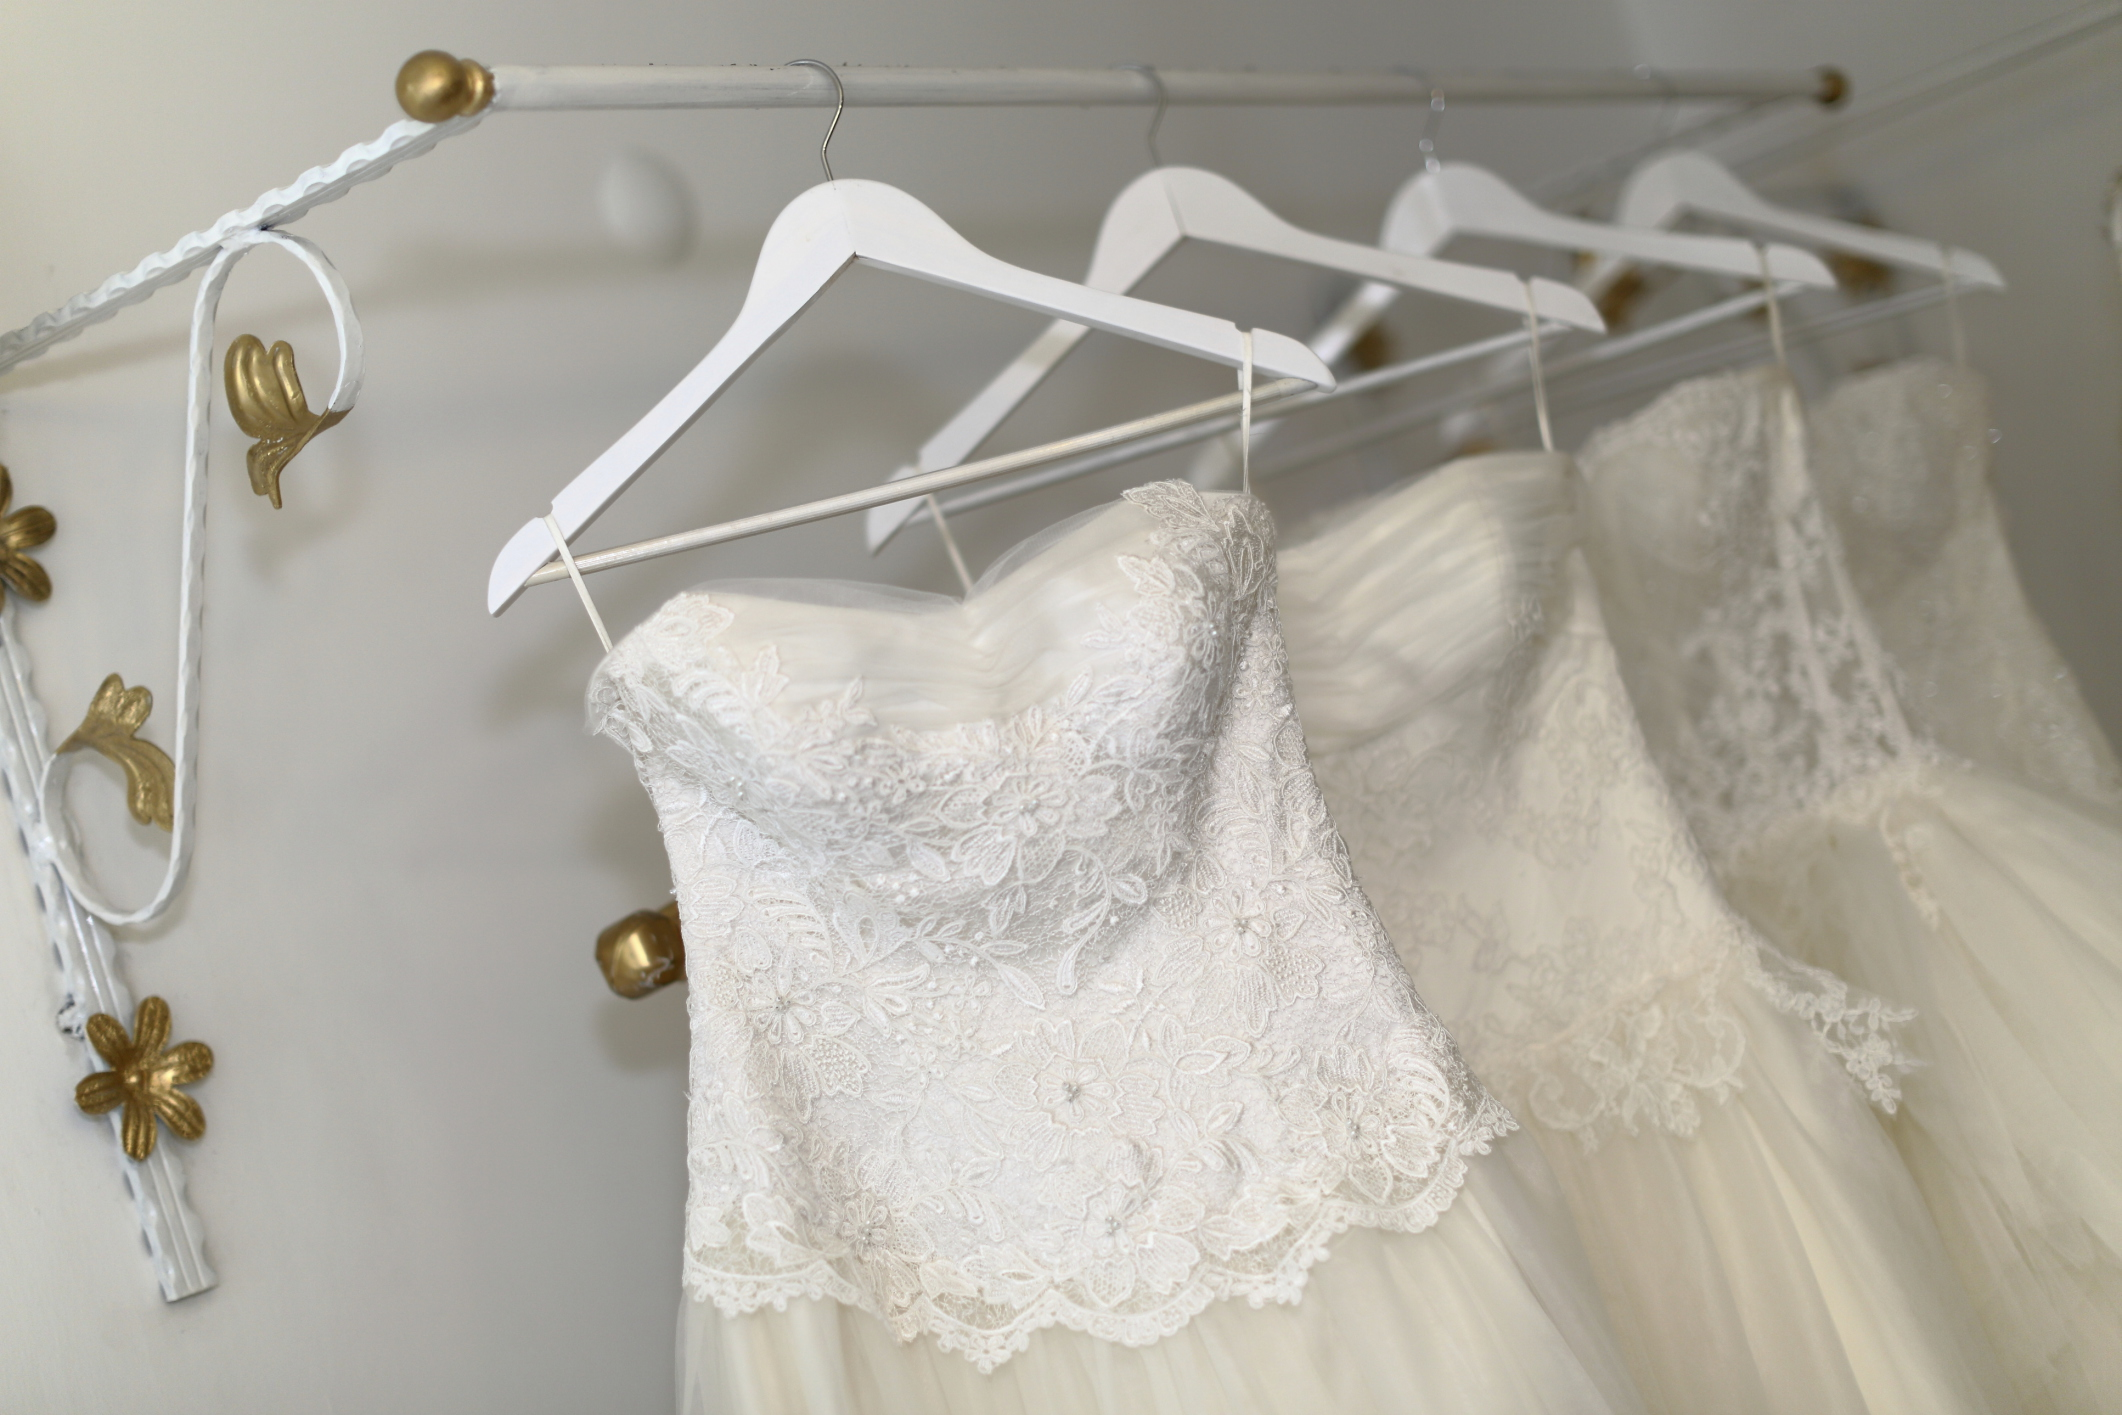 Sell Wedding Dress.Selling Your Wedding Dress Articles Easy Weddings